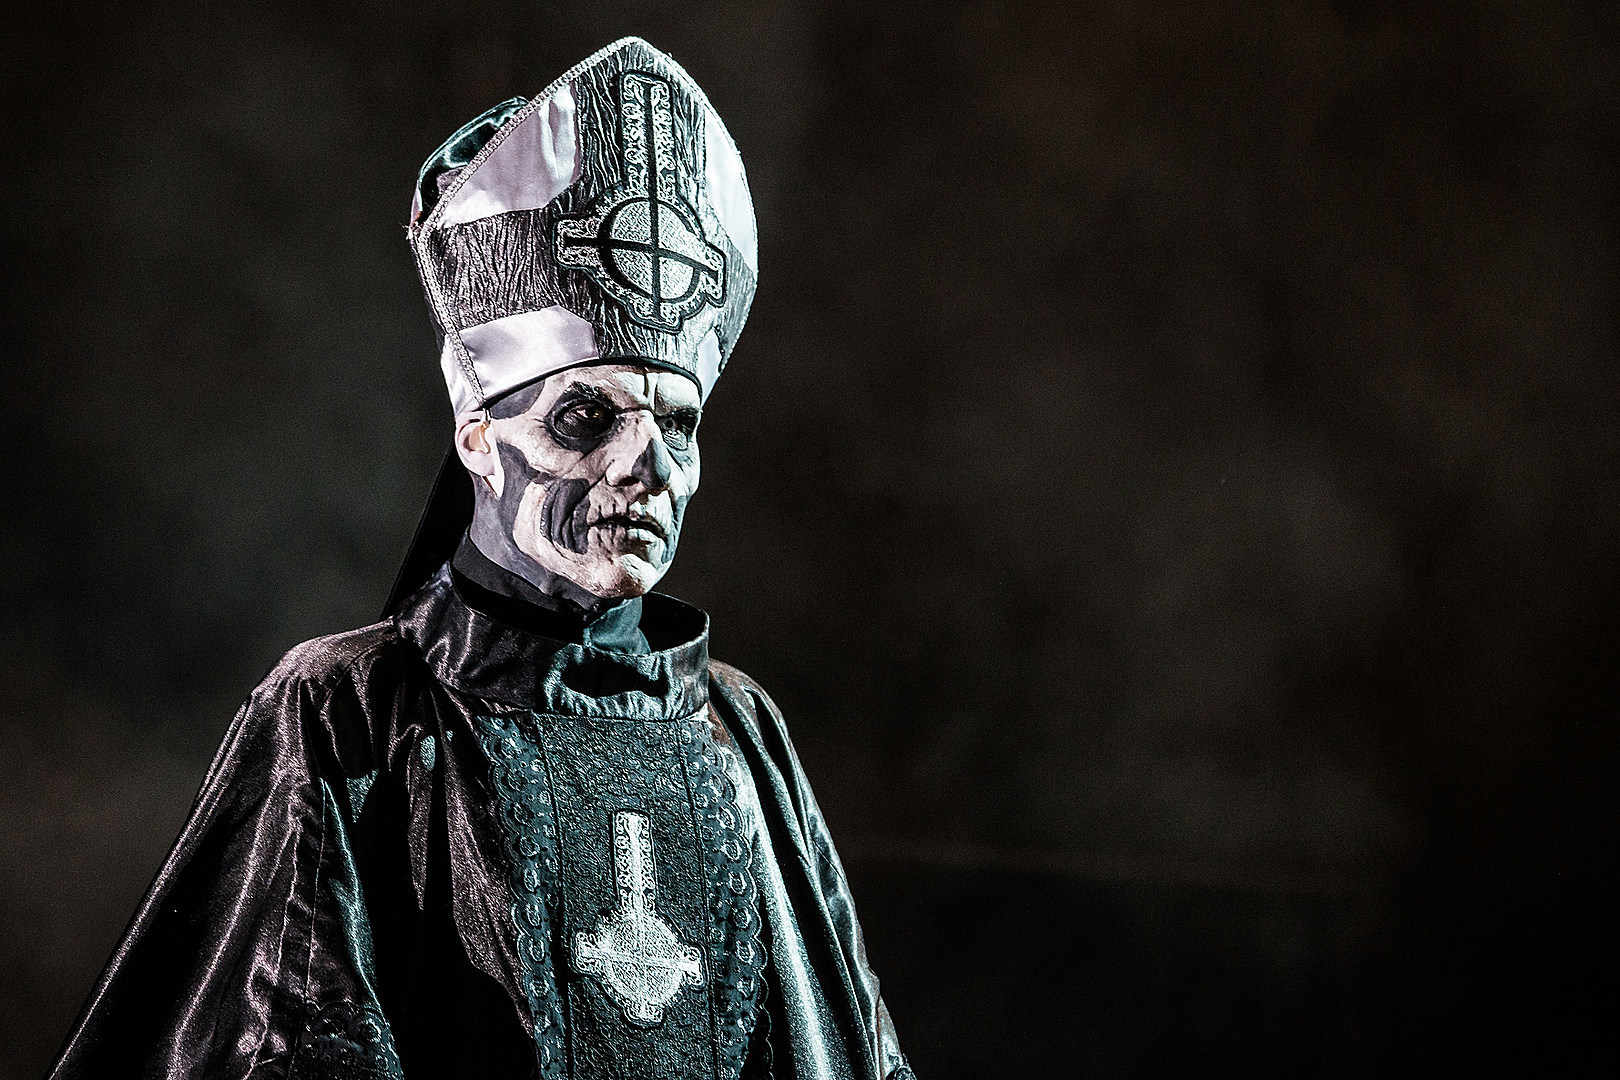 ghost frontman claims no legal partnership existed with bandmates